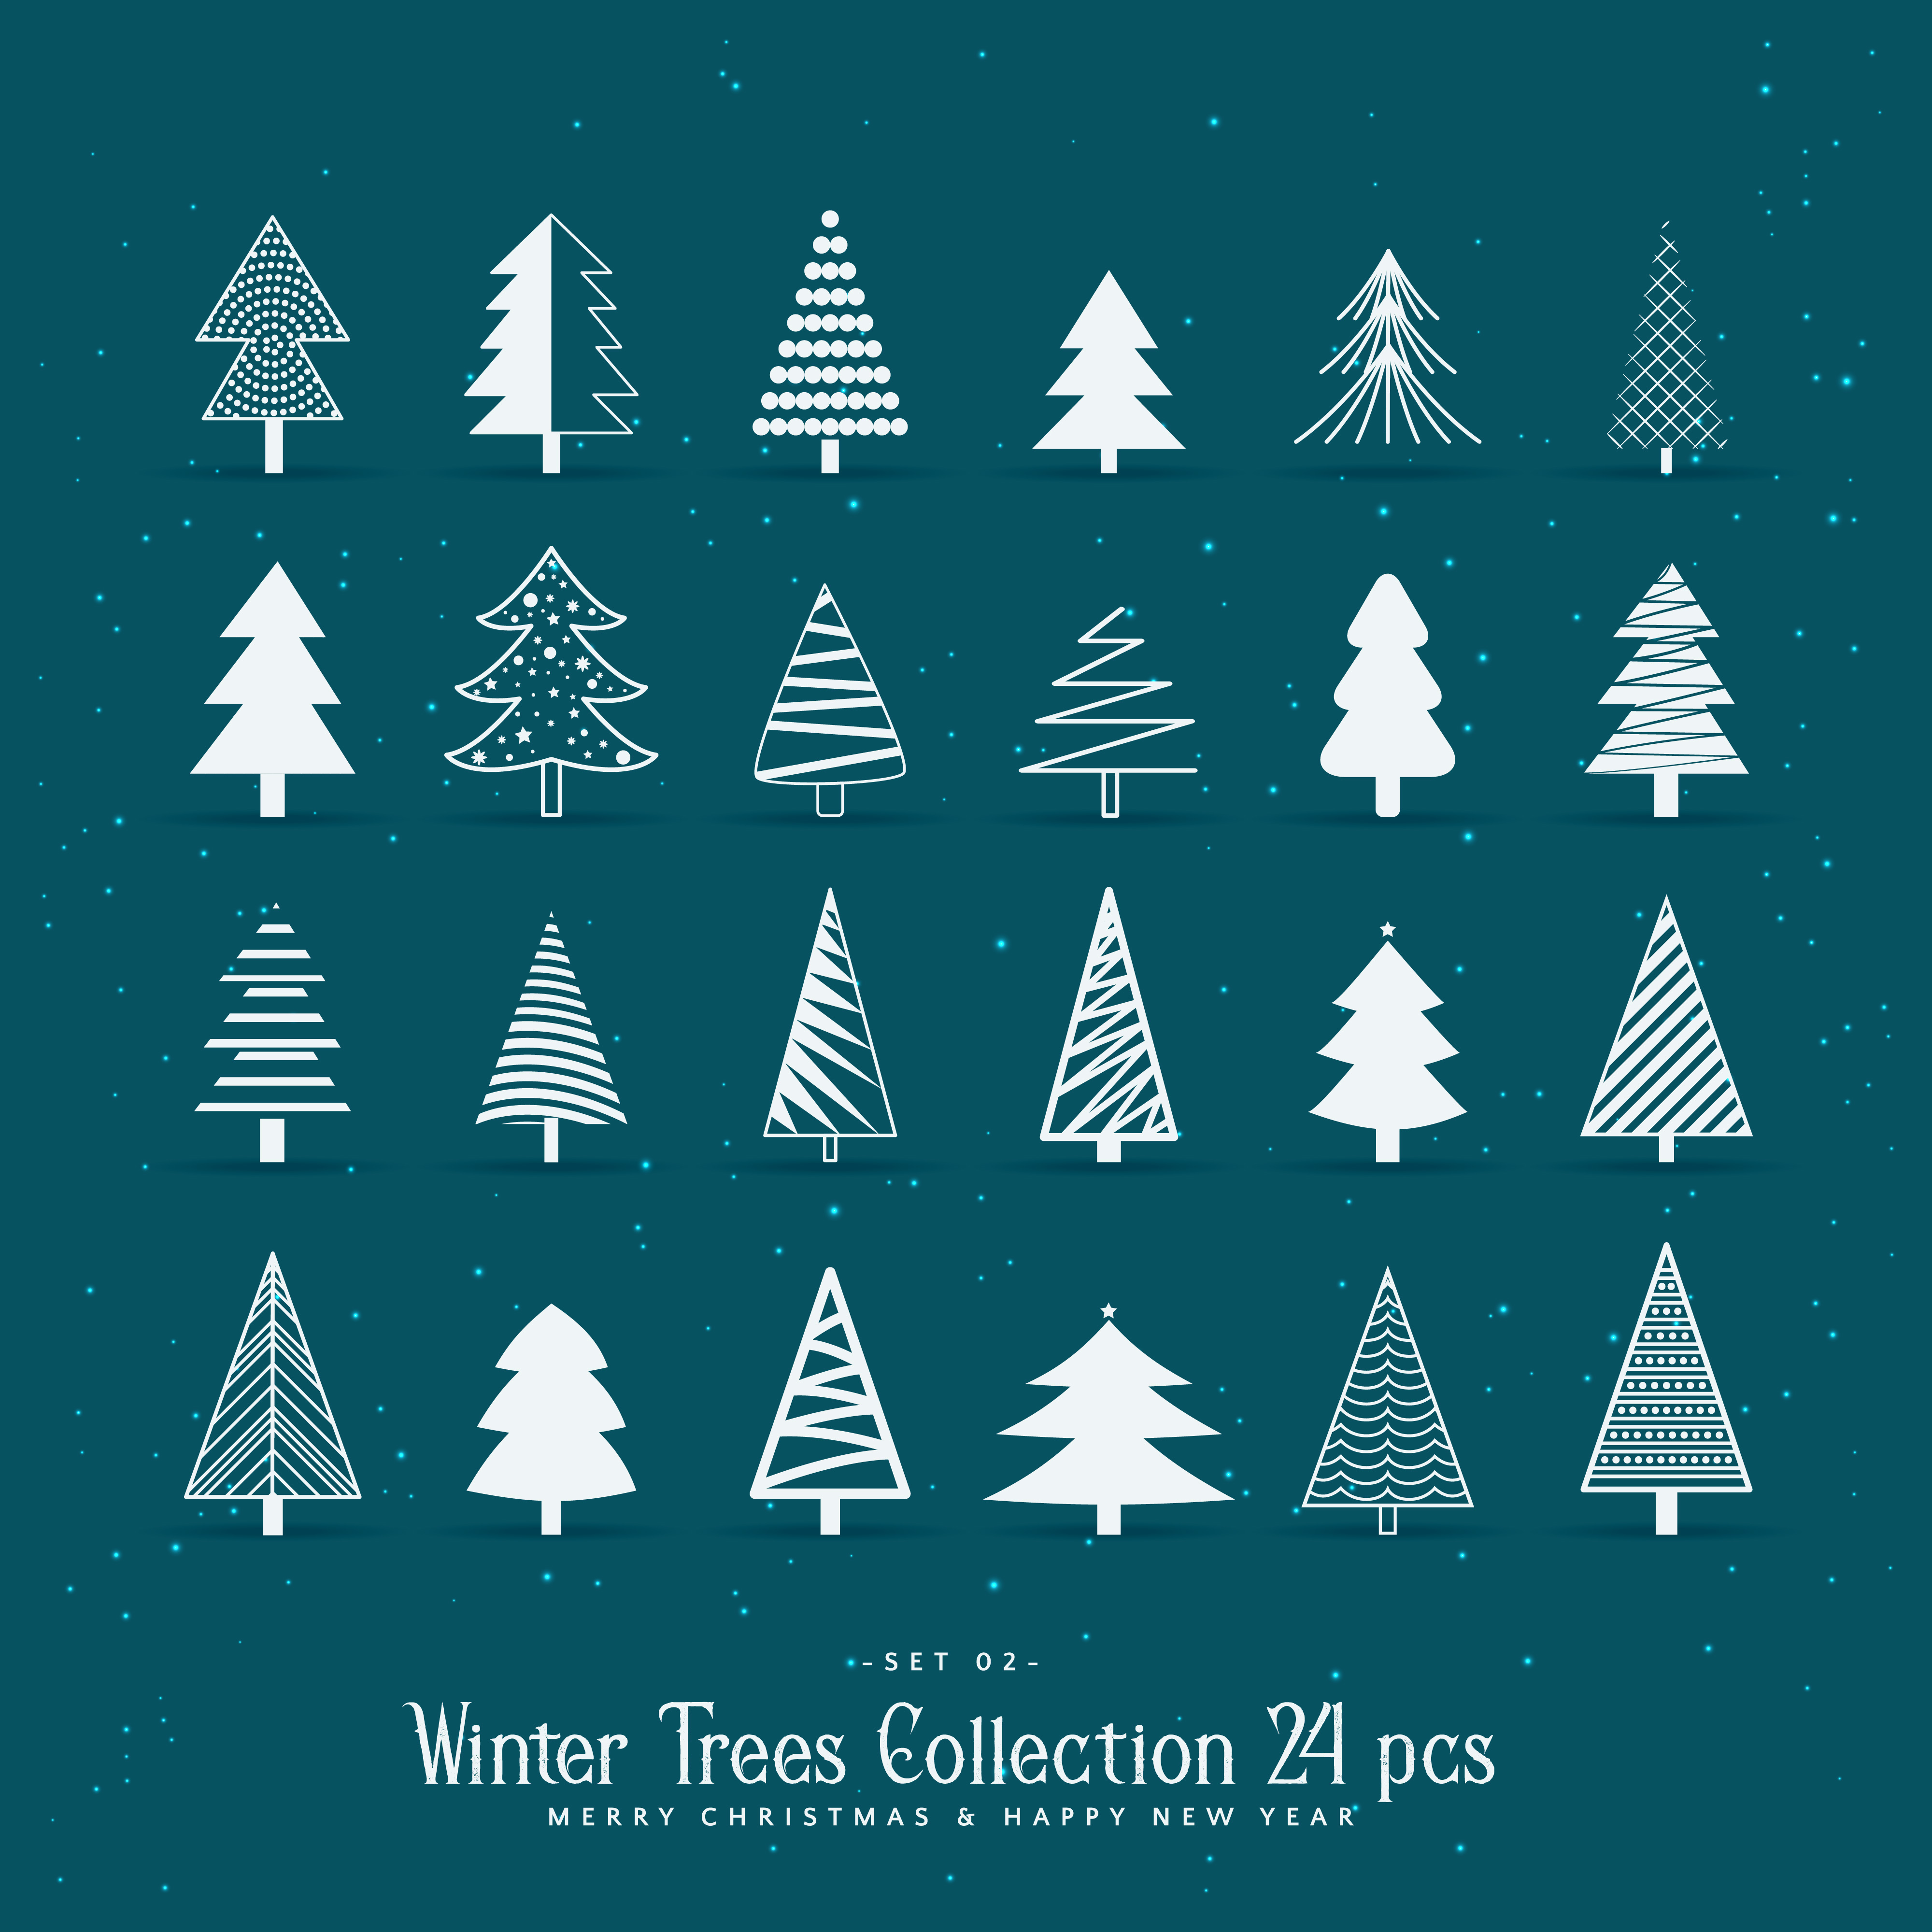 set of 20 creative christmas tree designs Download Free Vector Art